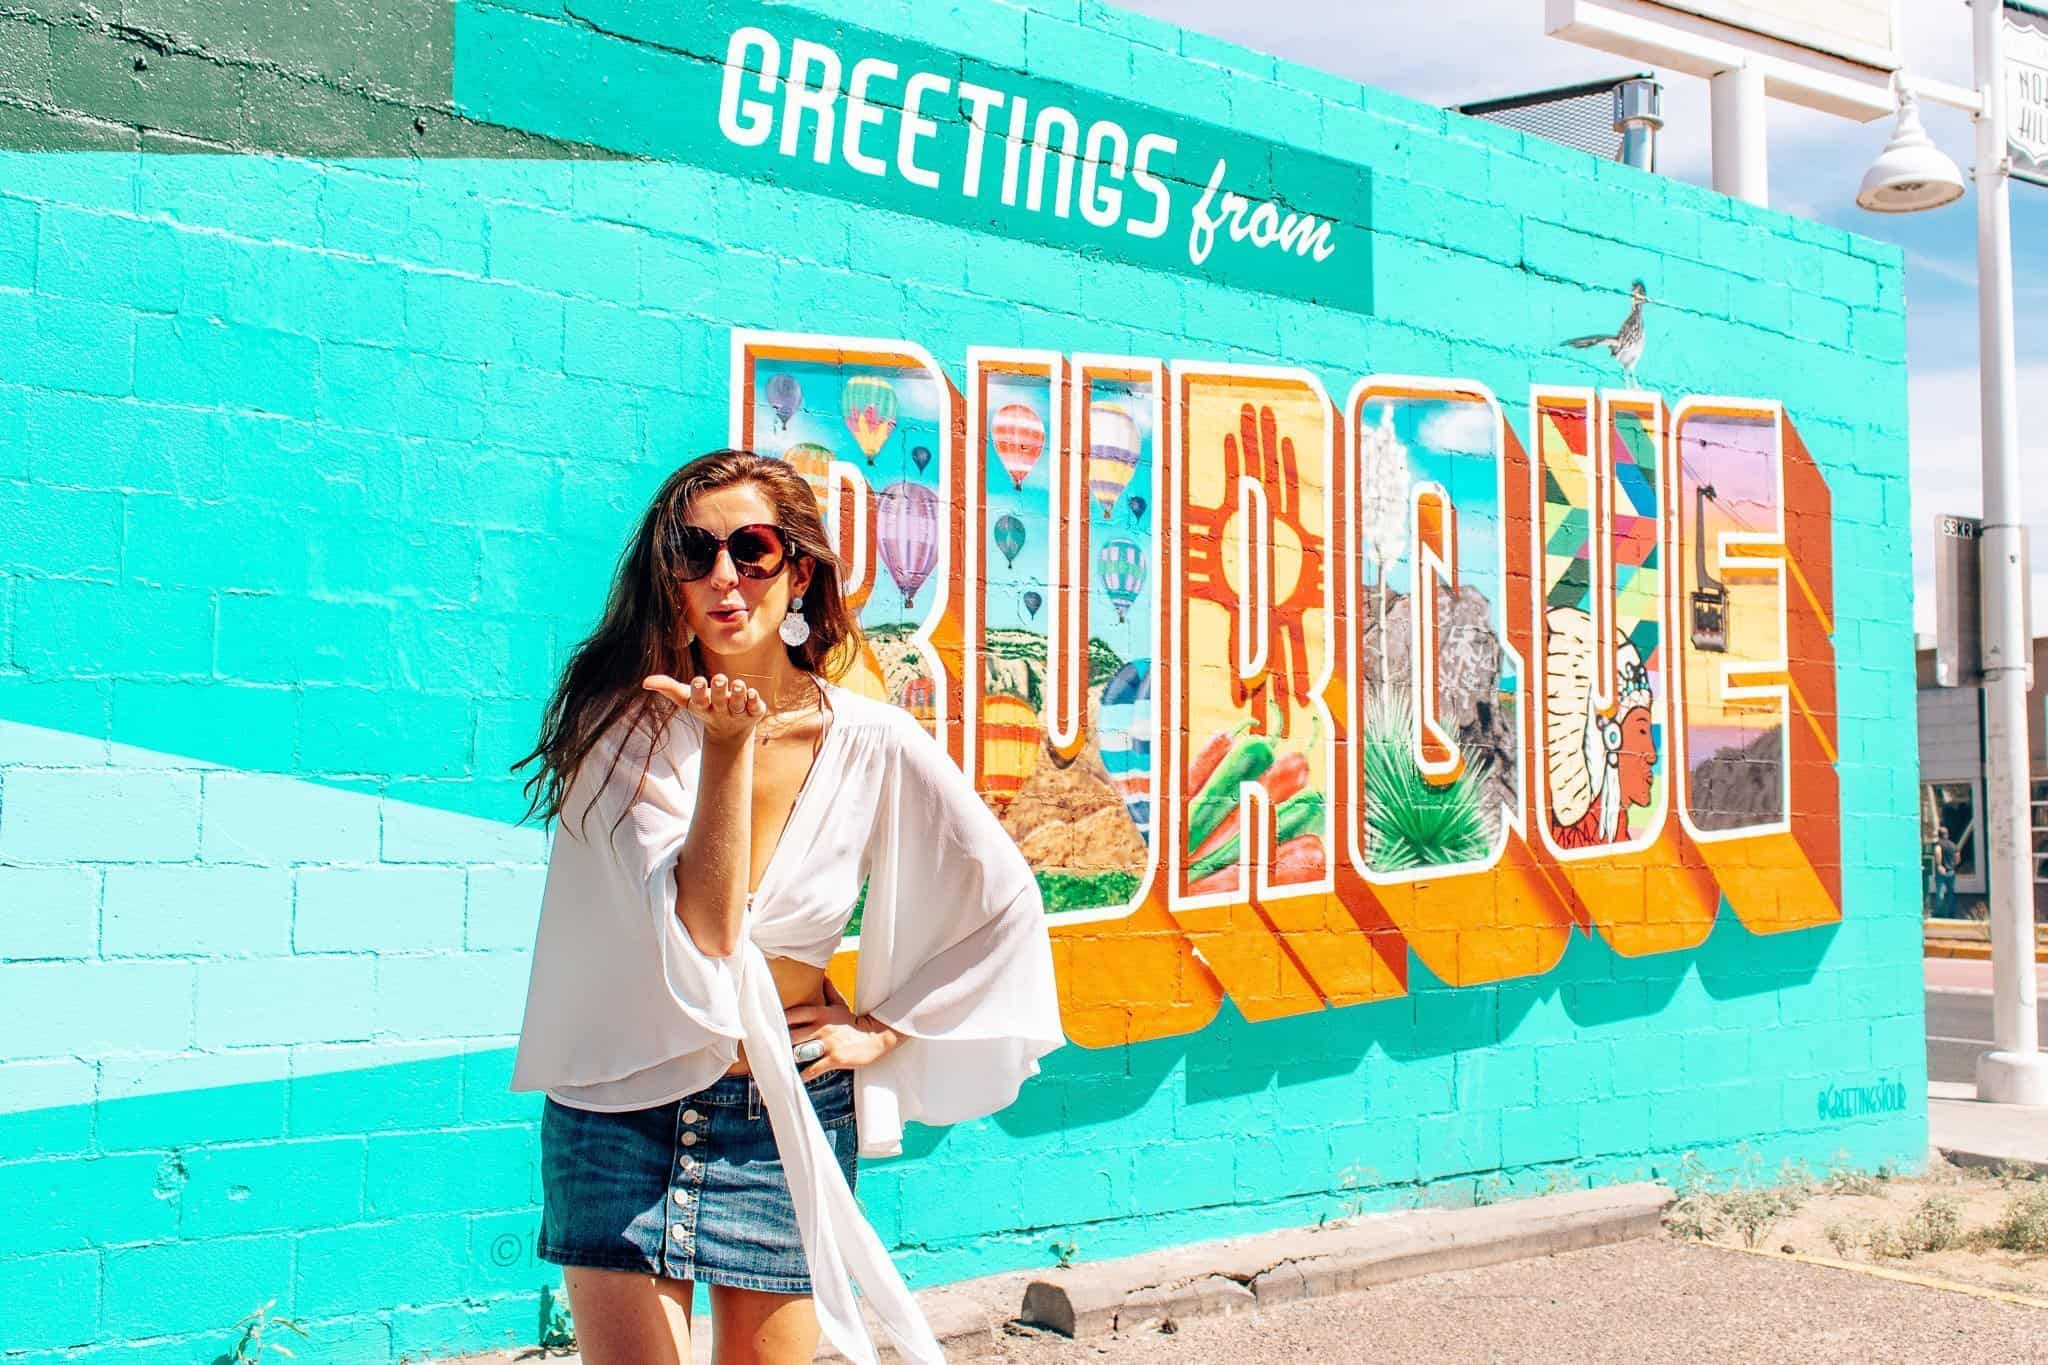 Bettina at Greetings from Burque Mural in Albuquerque - The Next Trip